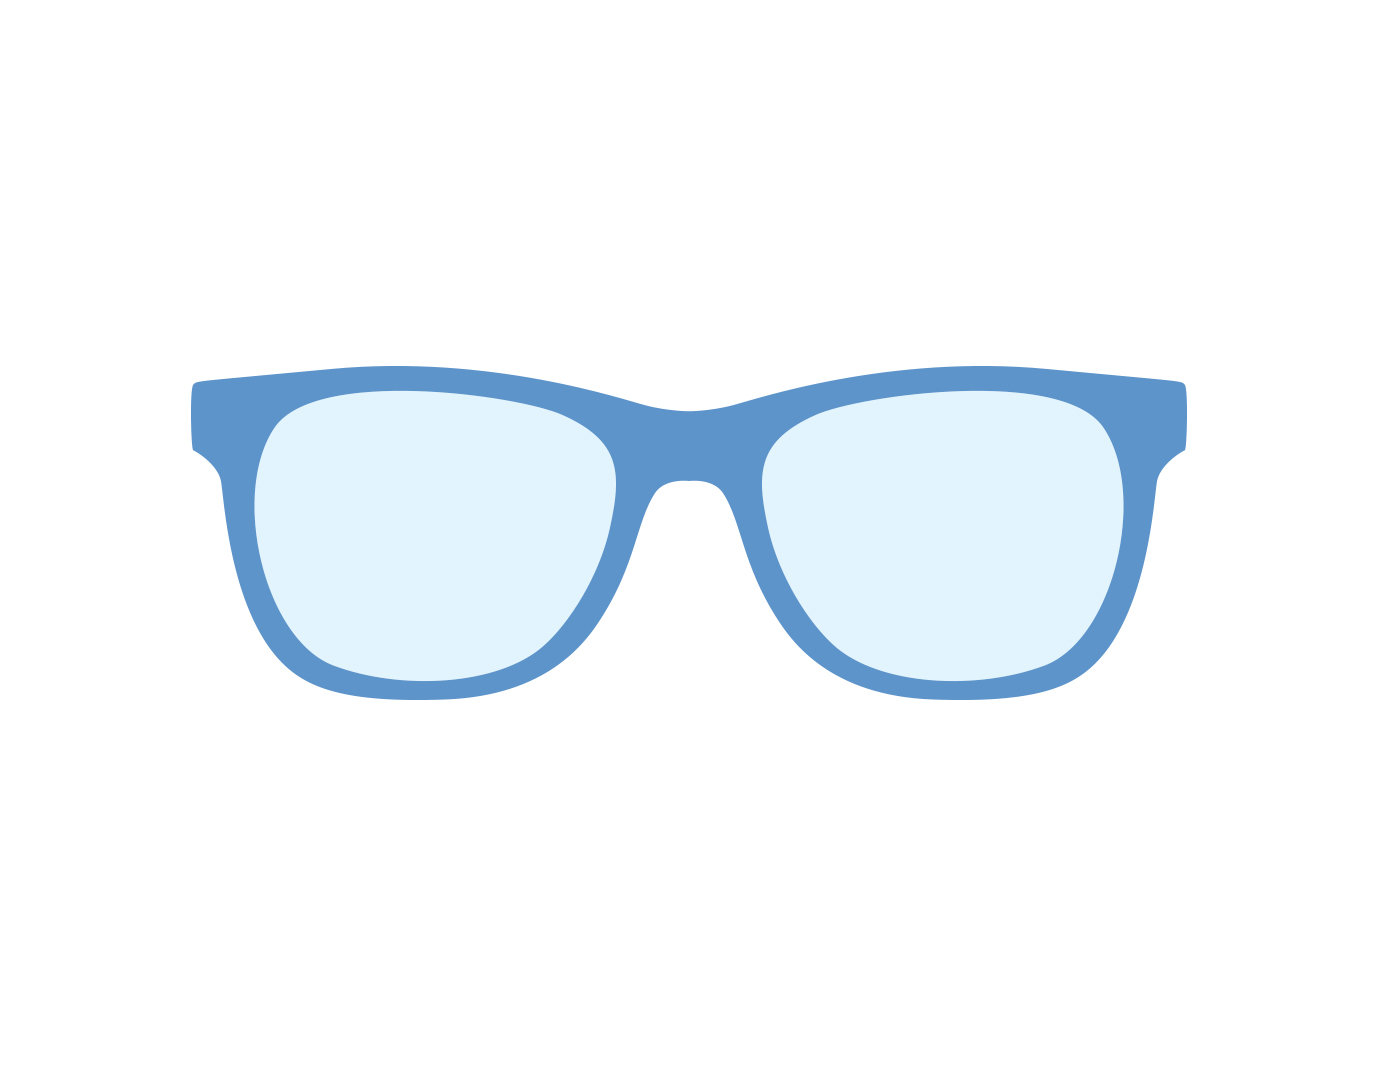 Icon of glasses with basic plastic lenses